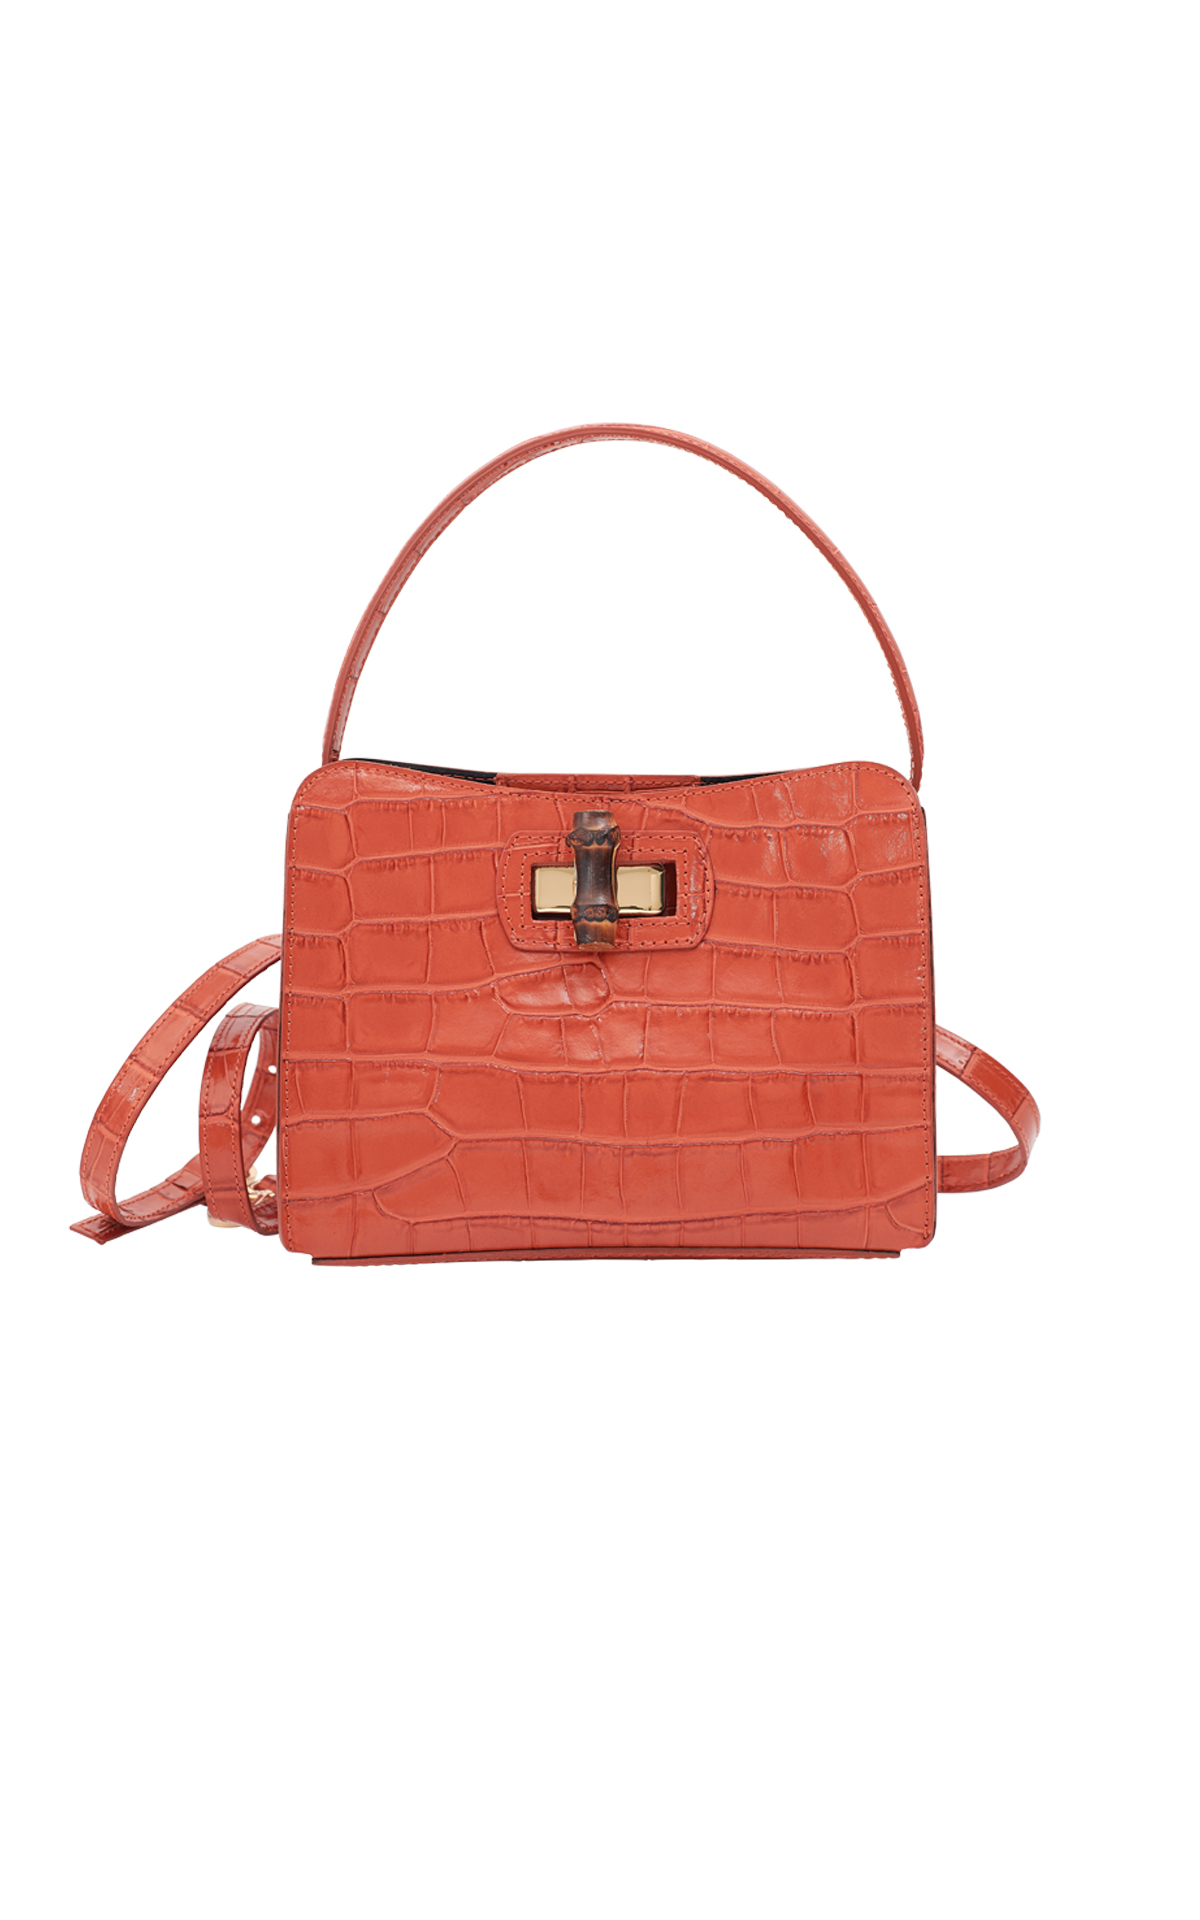 Orange bag from Baldinini